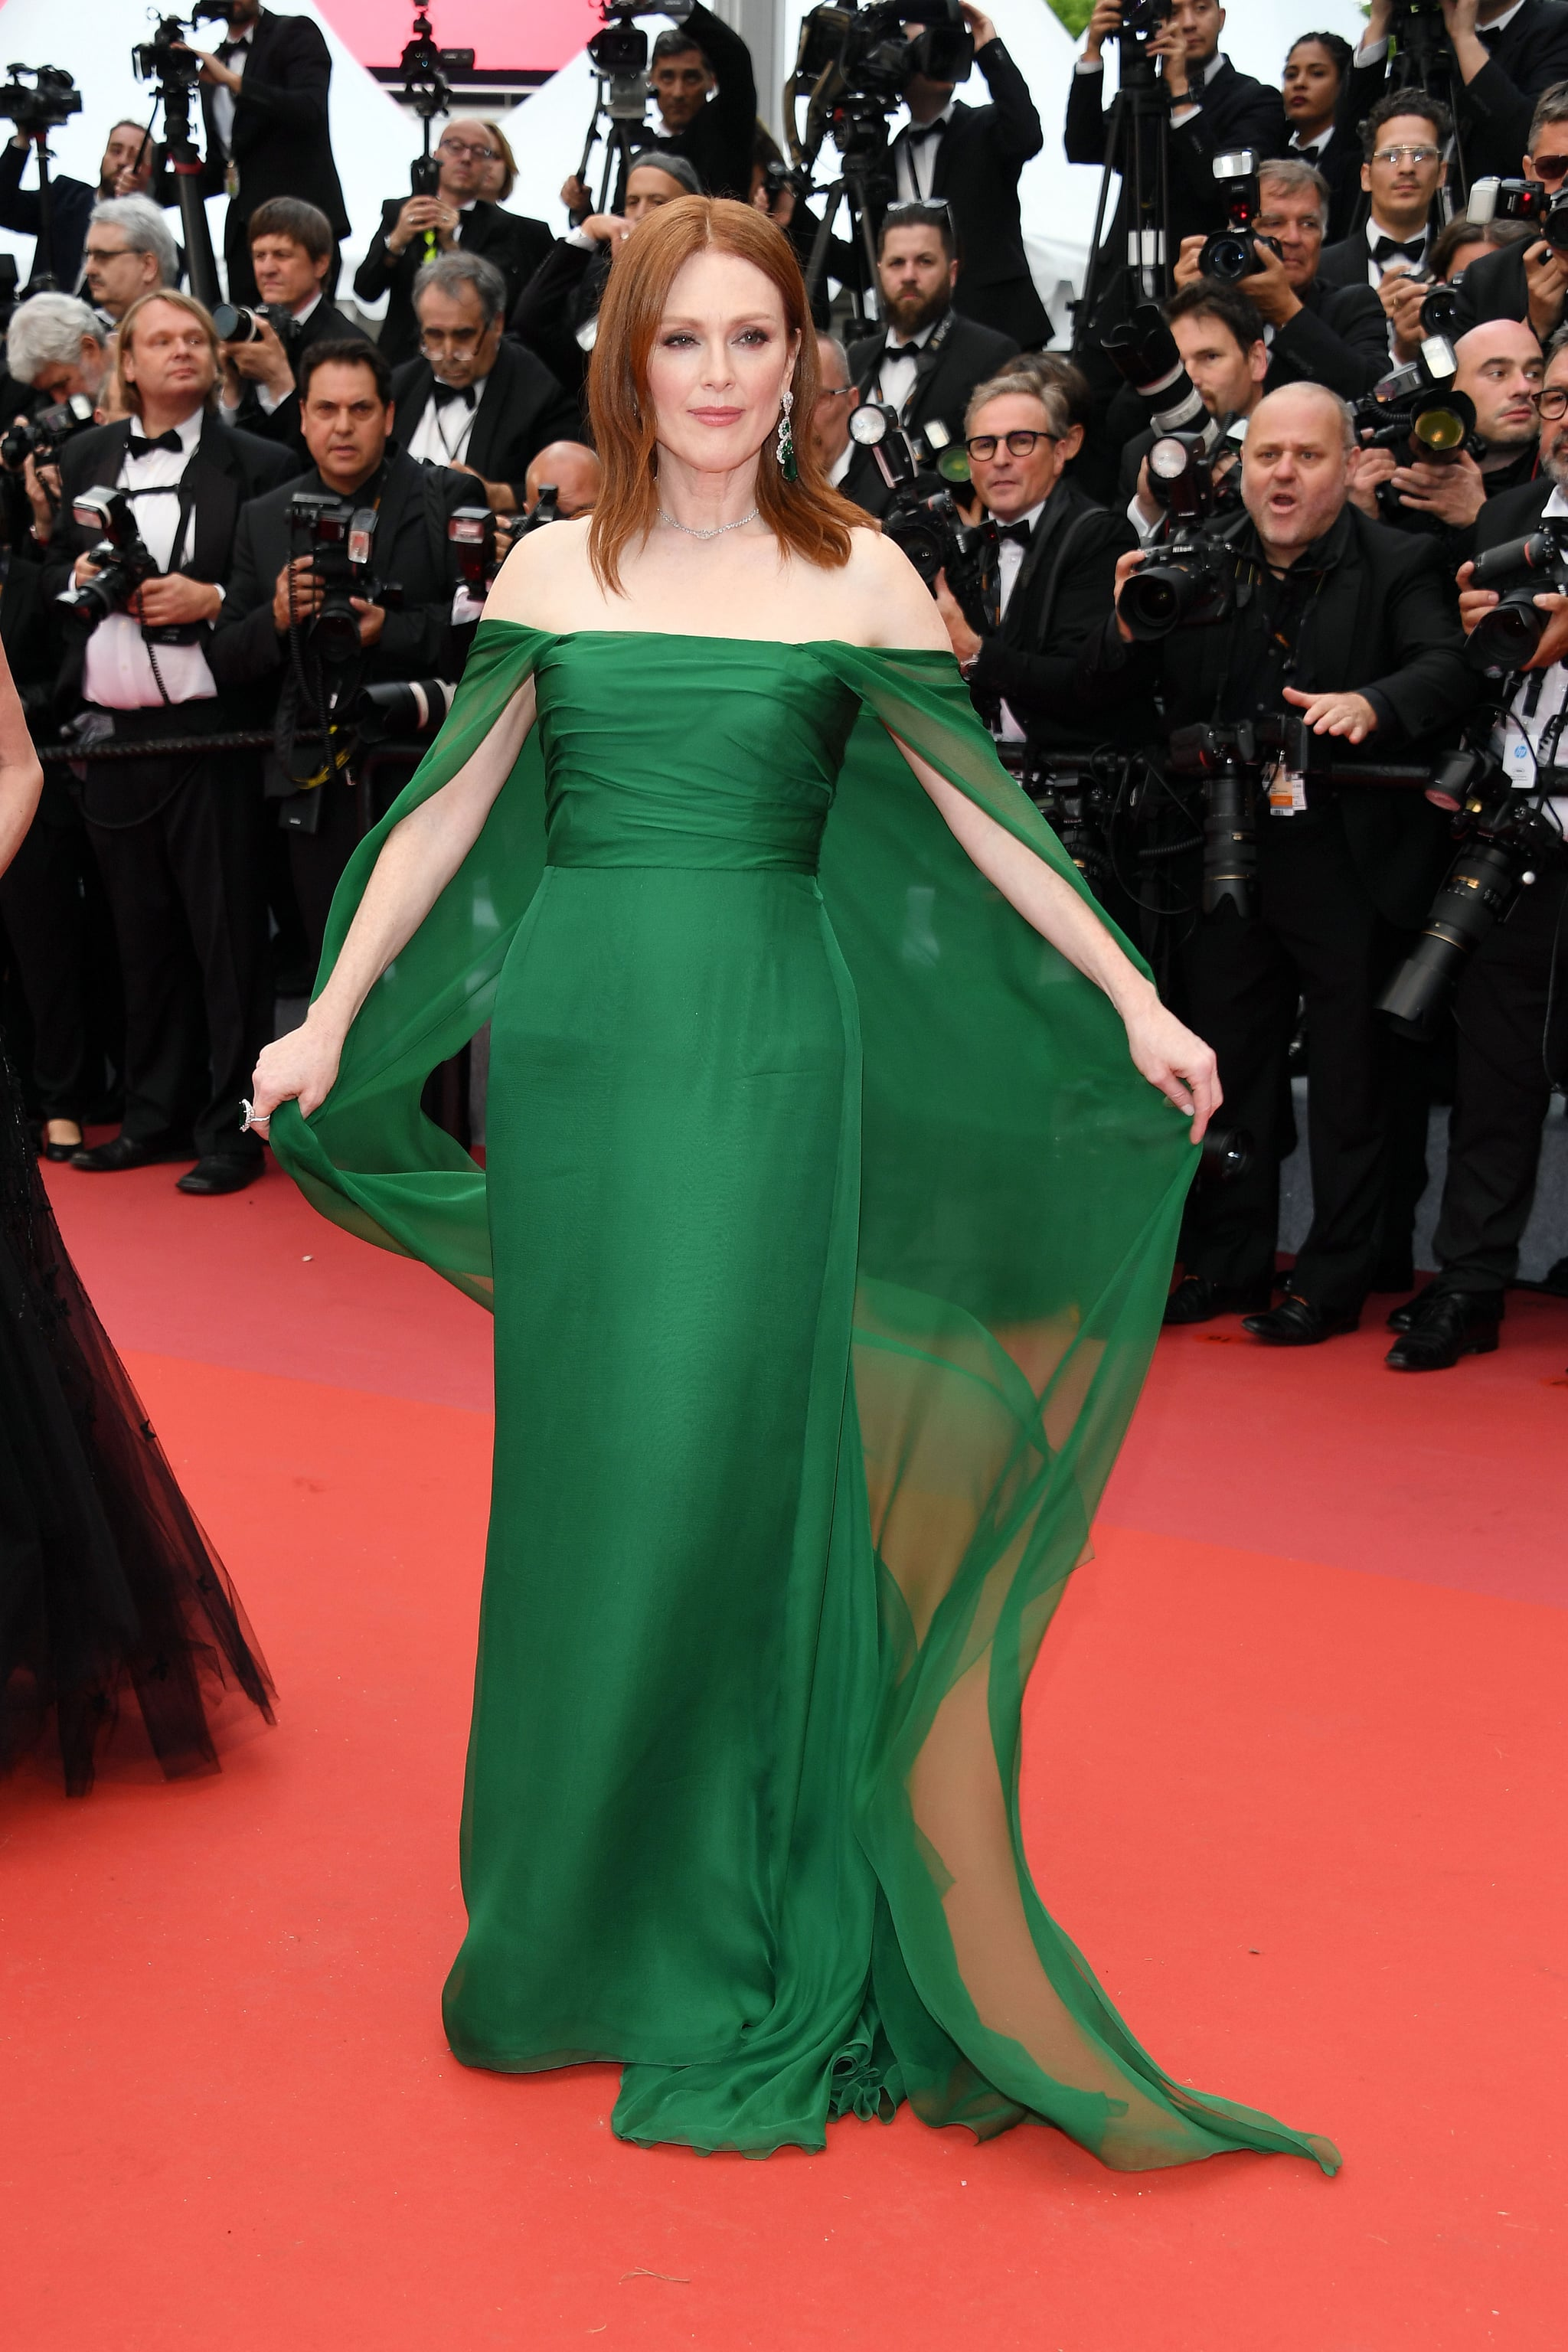 Julianne Moore At The 2019 Cannes Film Festival These Are